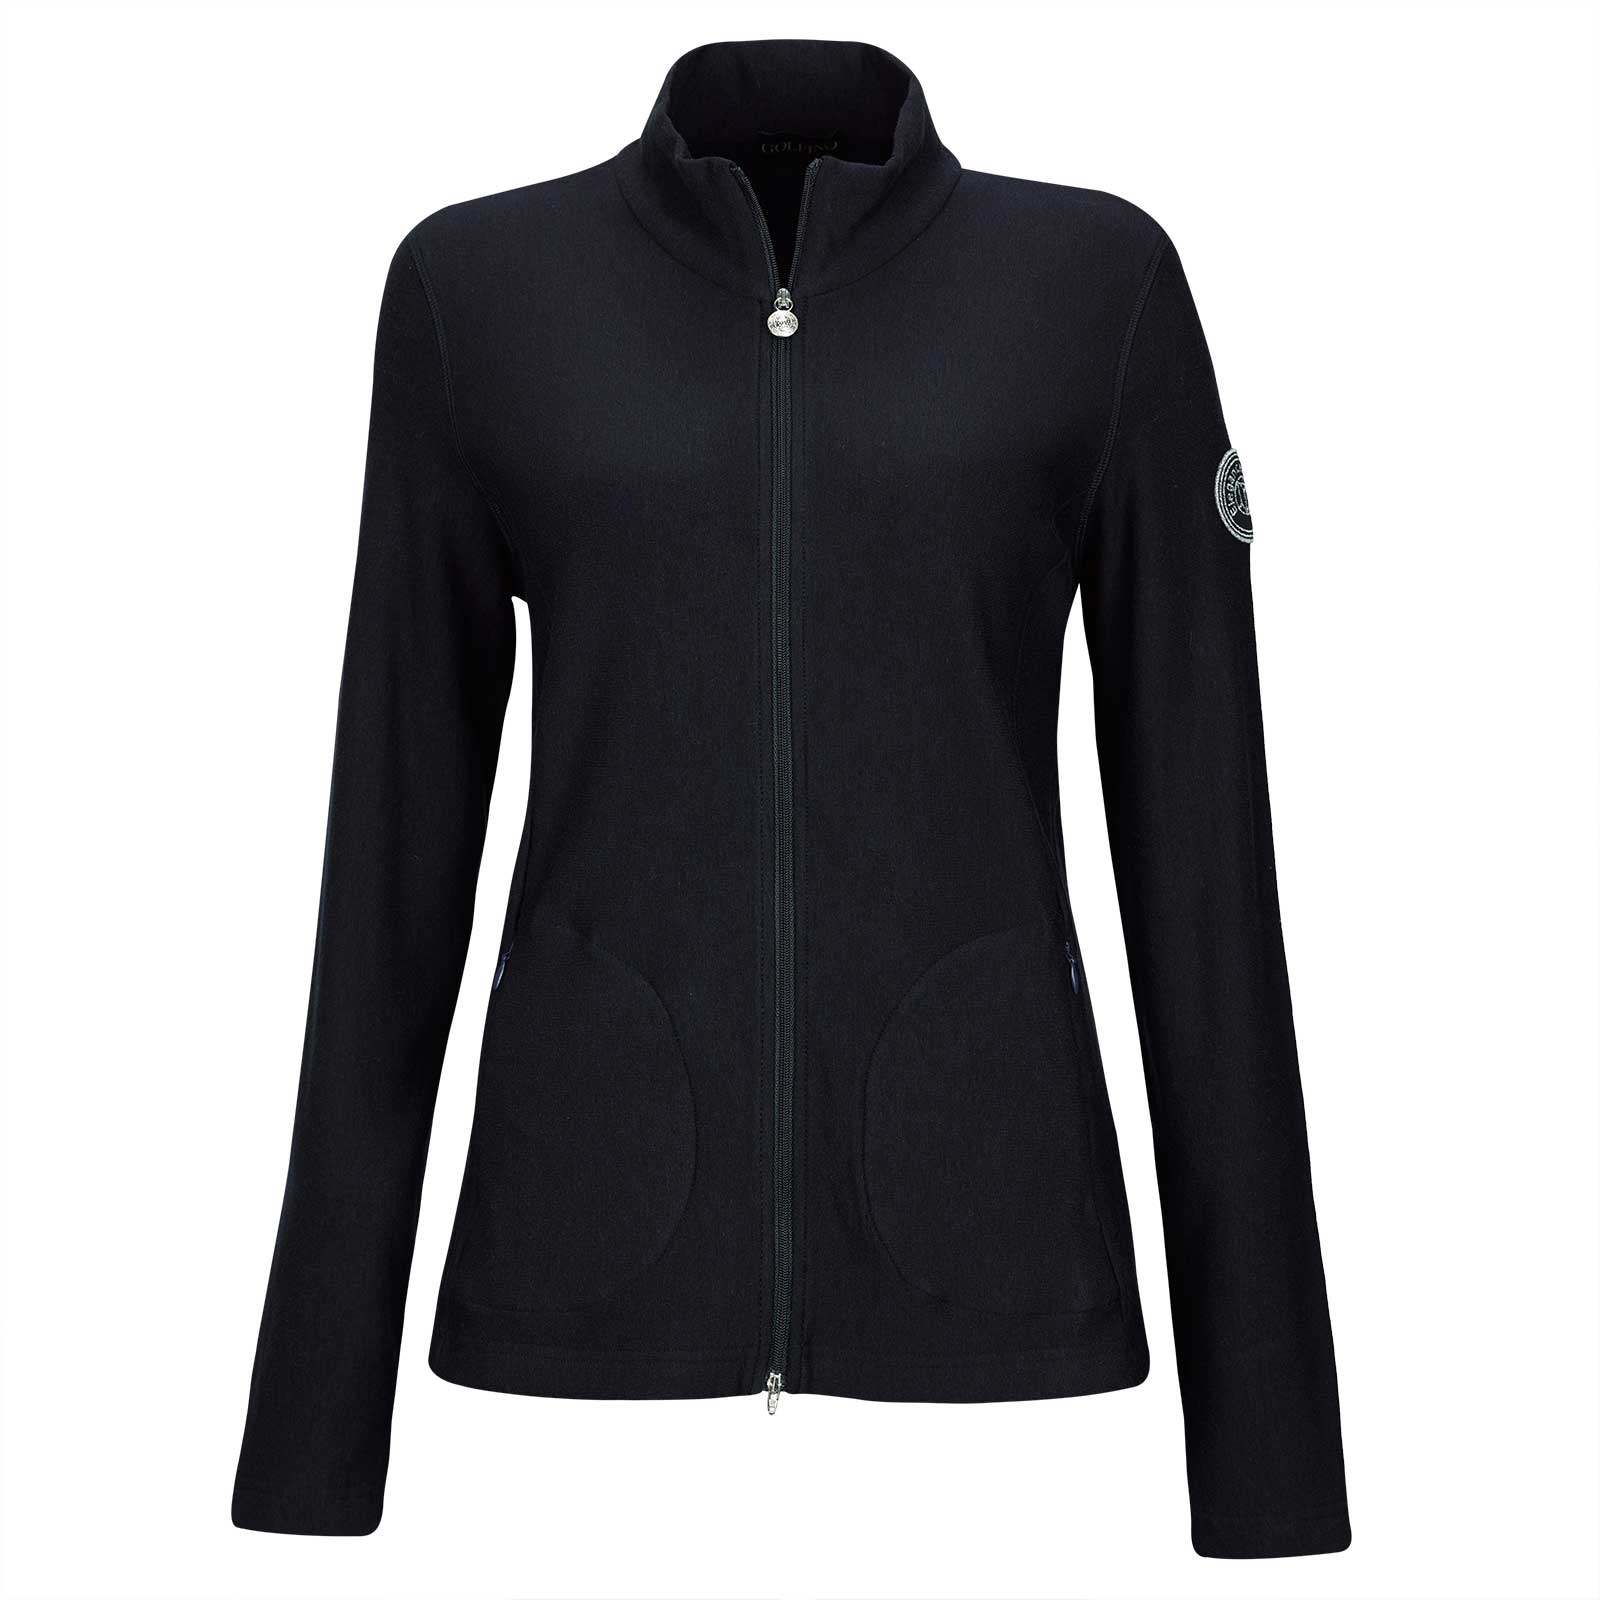 Damen Zip-Jacke mit Cold Protection Funktion